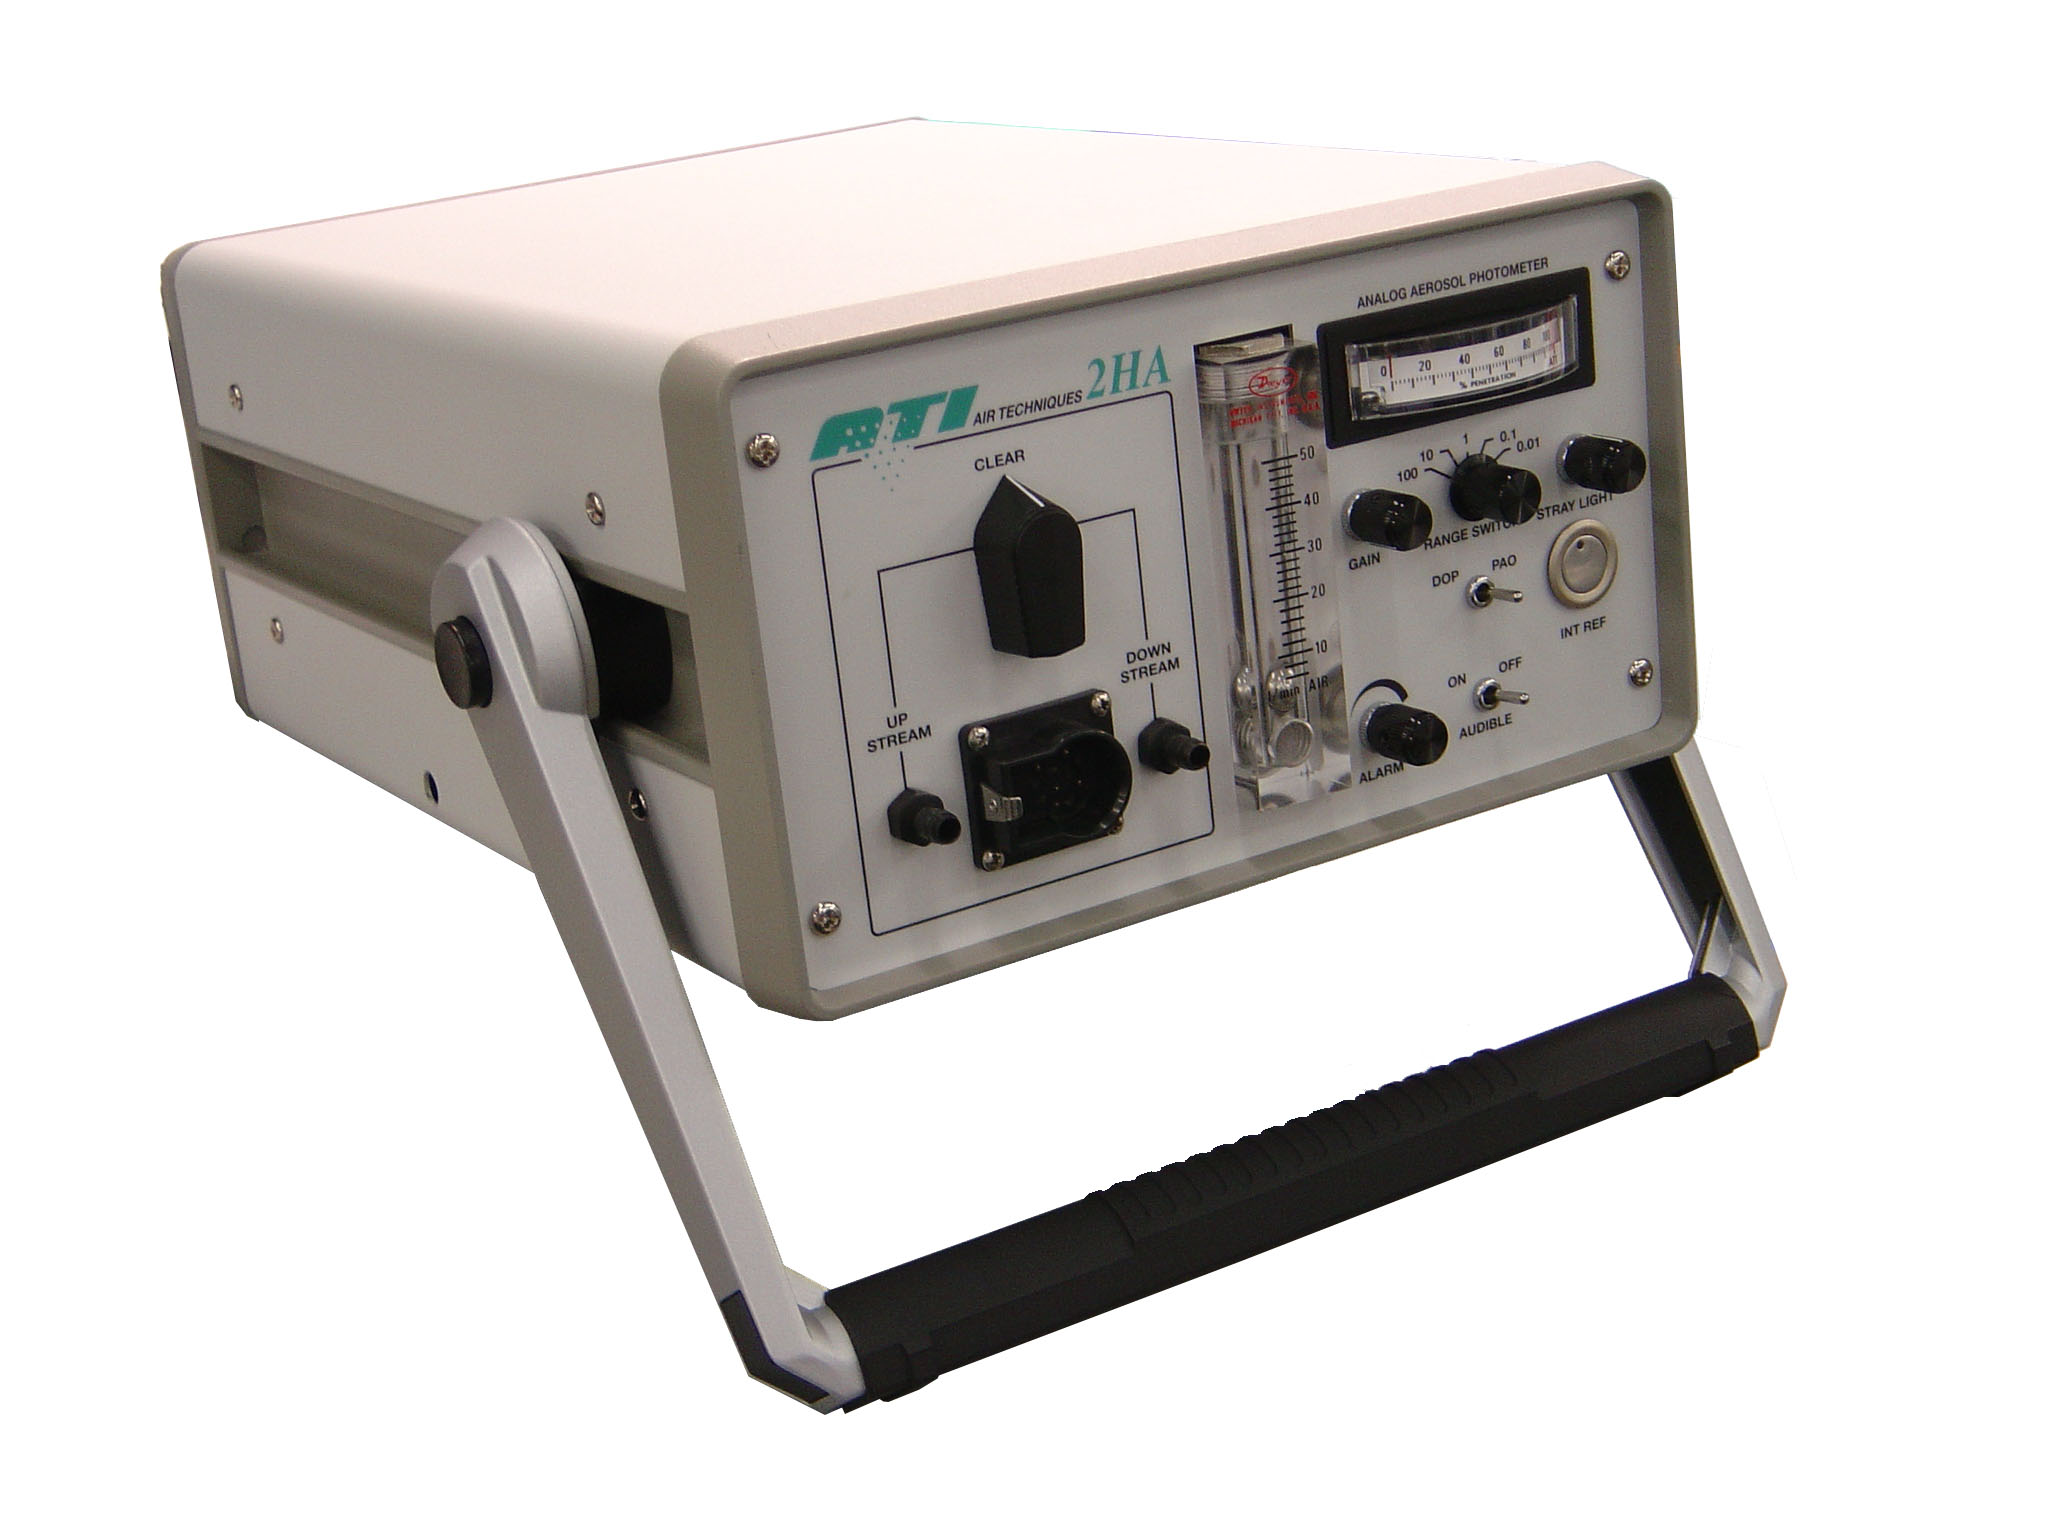 2HA Analog Portable Photometer